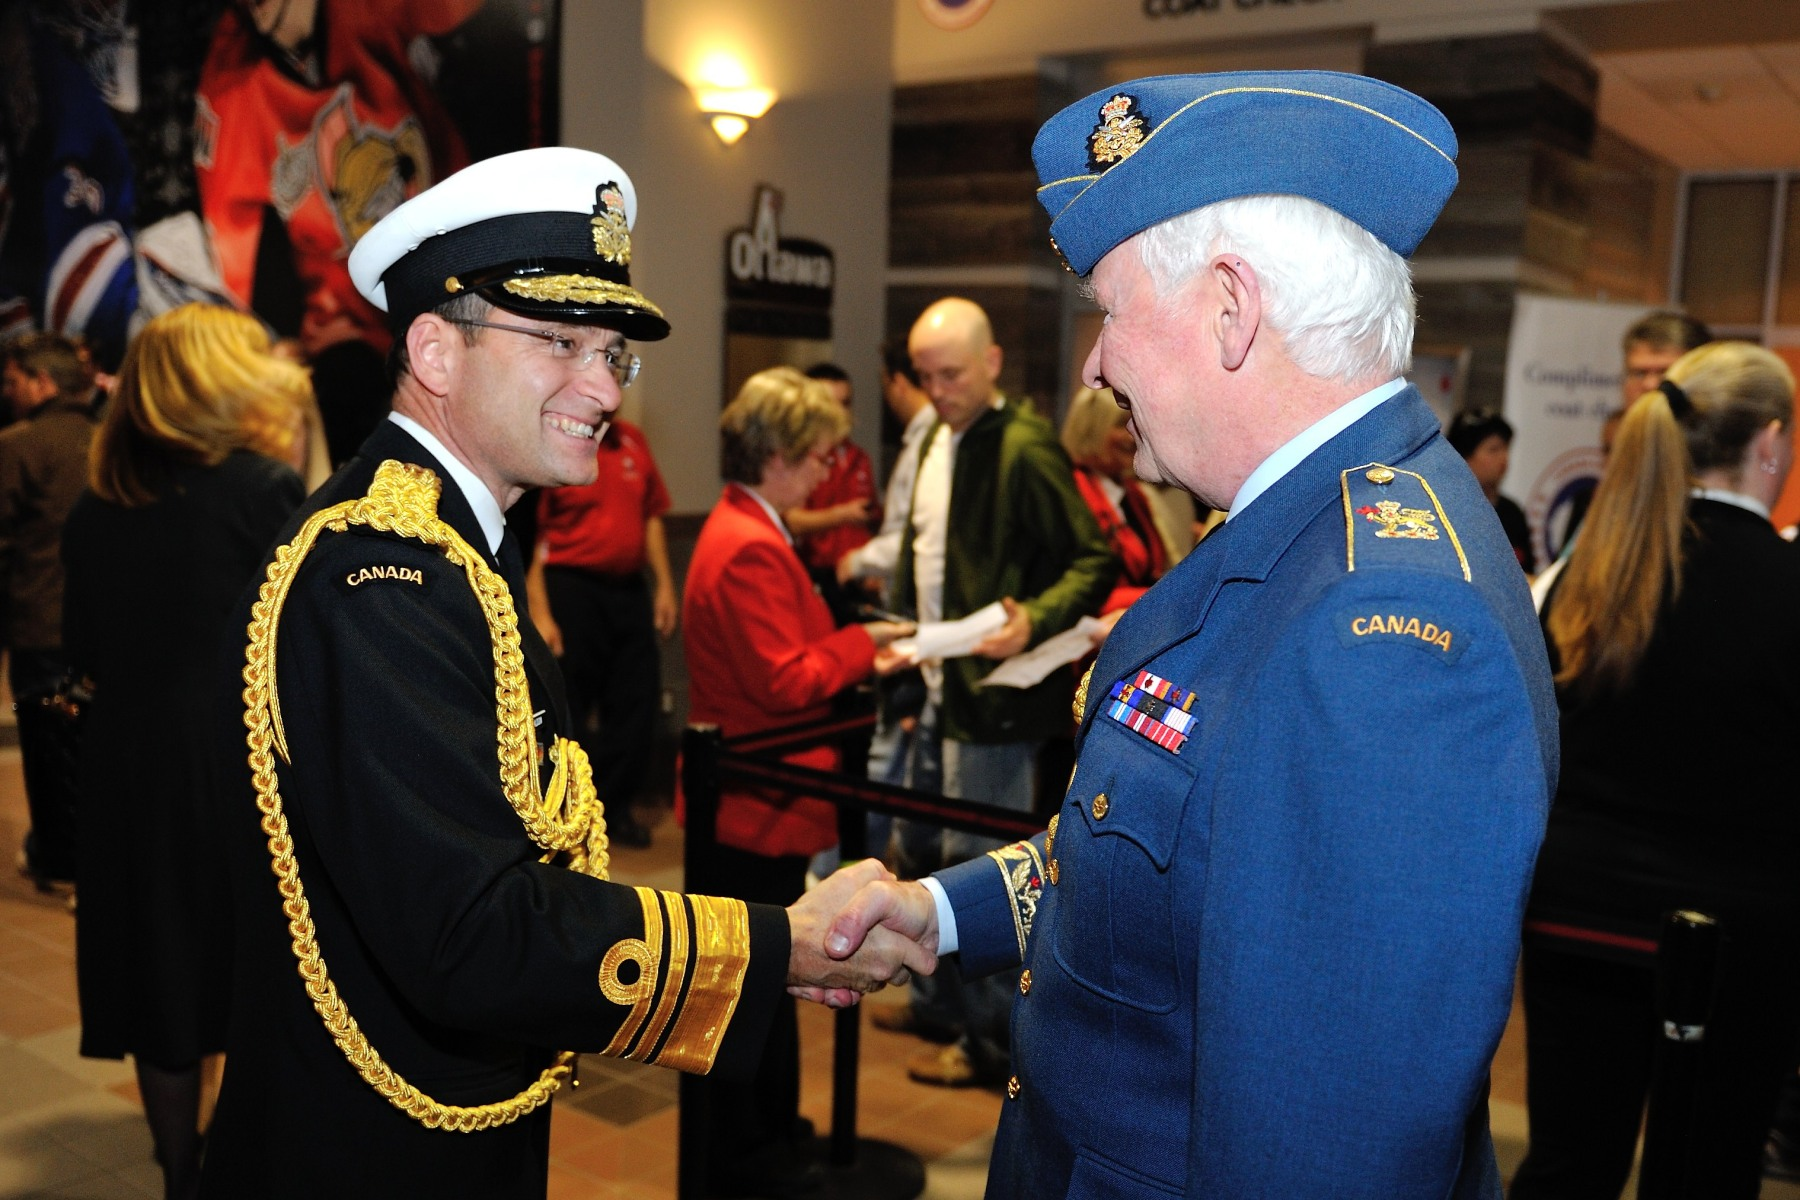 His Excellency was greeted by Vice-Admiral Bruce Donaldson, Vice-Chief of the Defence Staff.